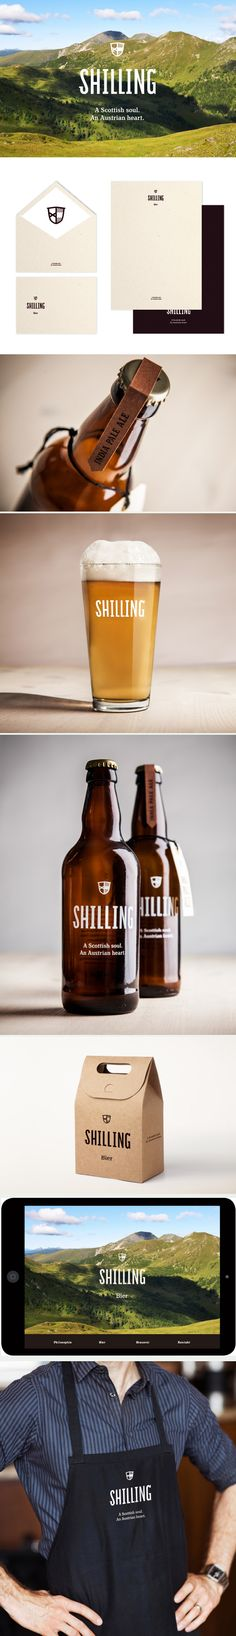 identity / shilling / beer